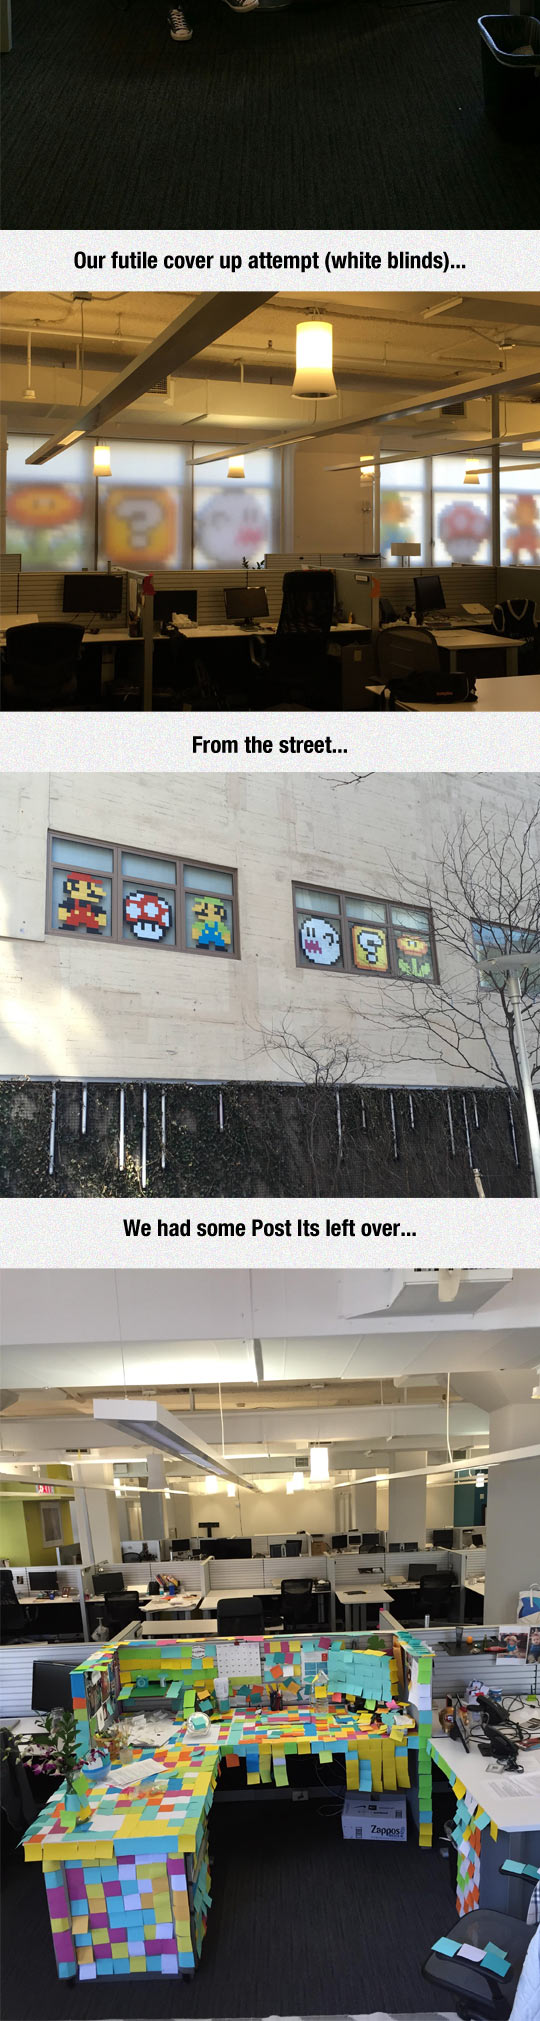 funny-Post-It-Mario-art-work-office-street-view